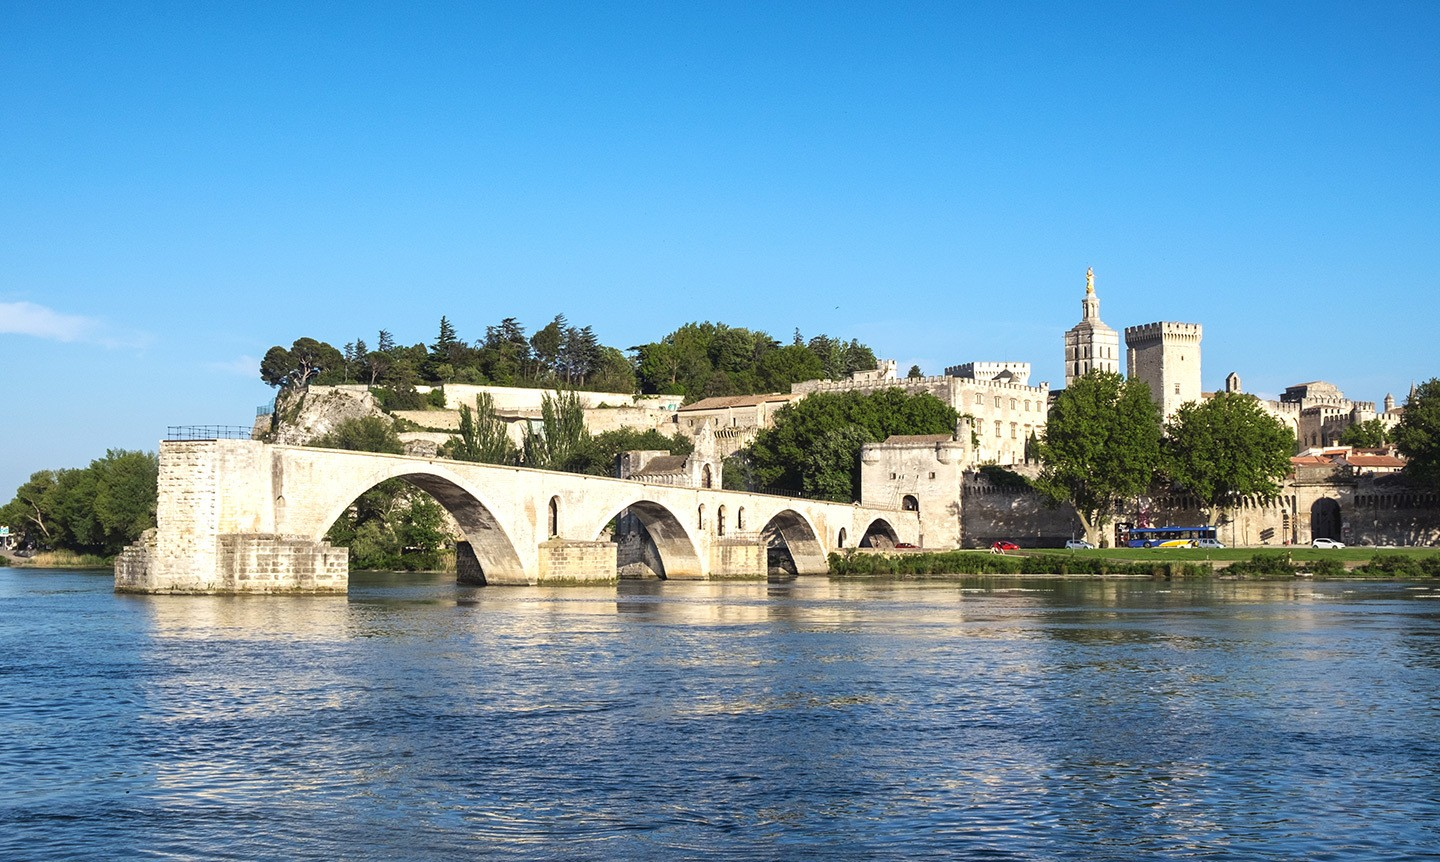 The Pont d'Avignon in Avignon